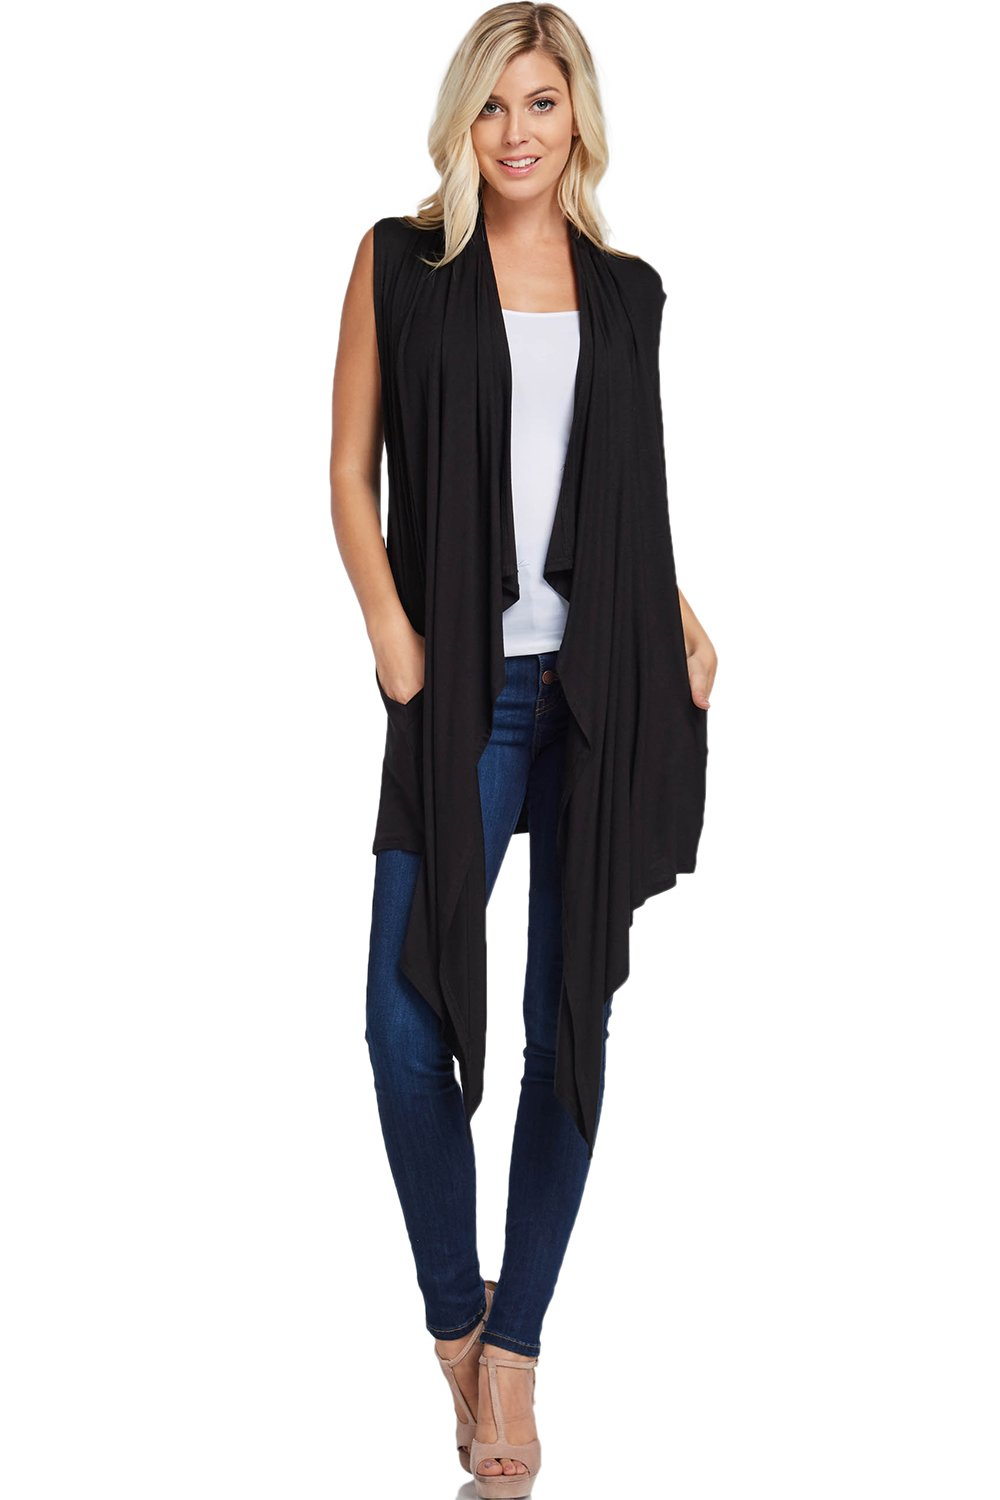 Annabelle Women's Draped Vest Knit Cardigan With Side Pockets X-Large Black T1093X